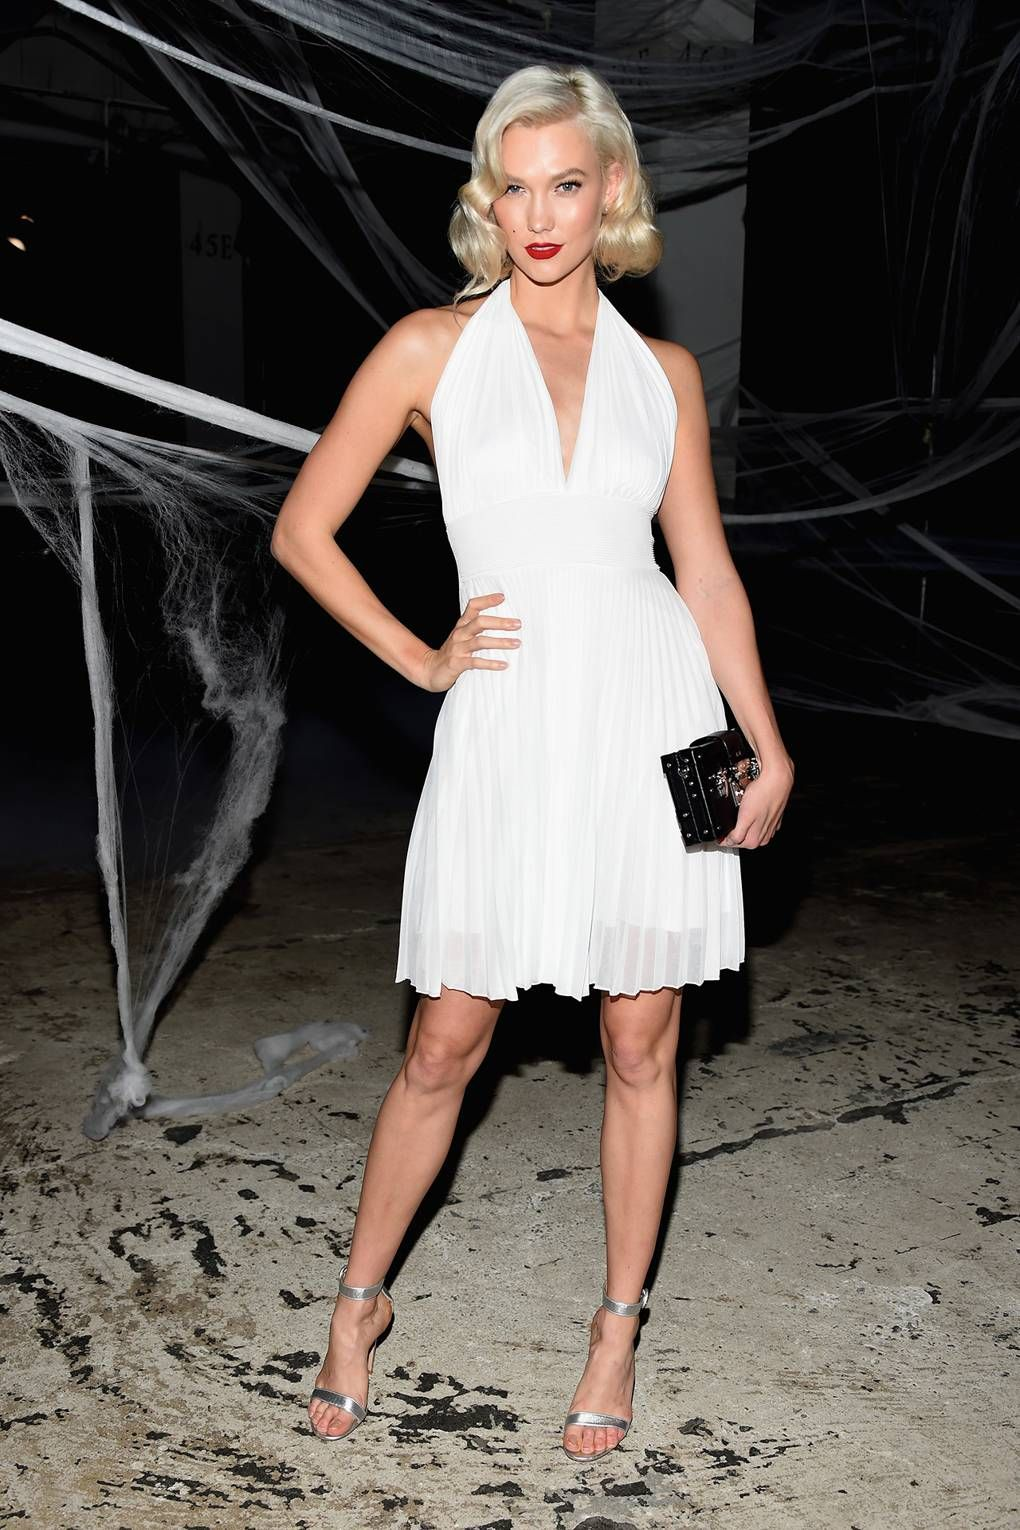 Original Halloween Costume Ideas 2020 Already thinking about next year? All the best celebrity Halloween